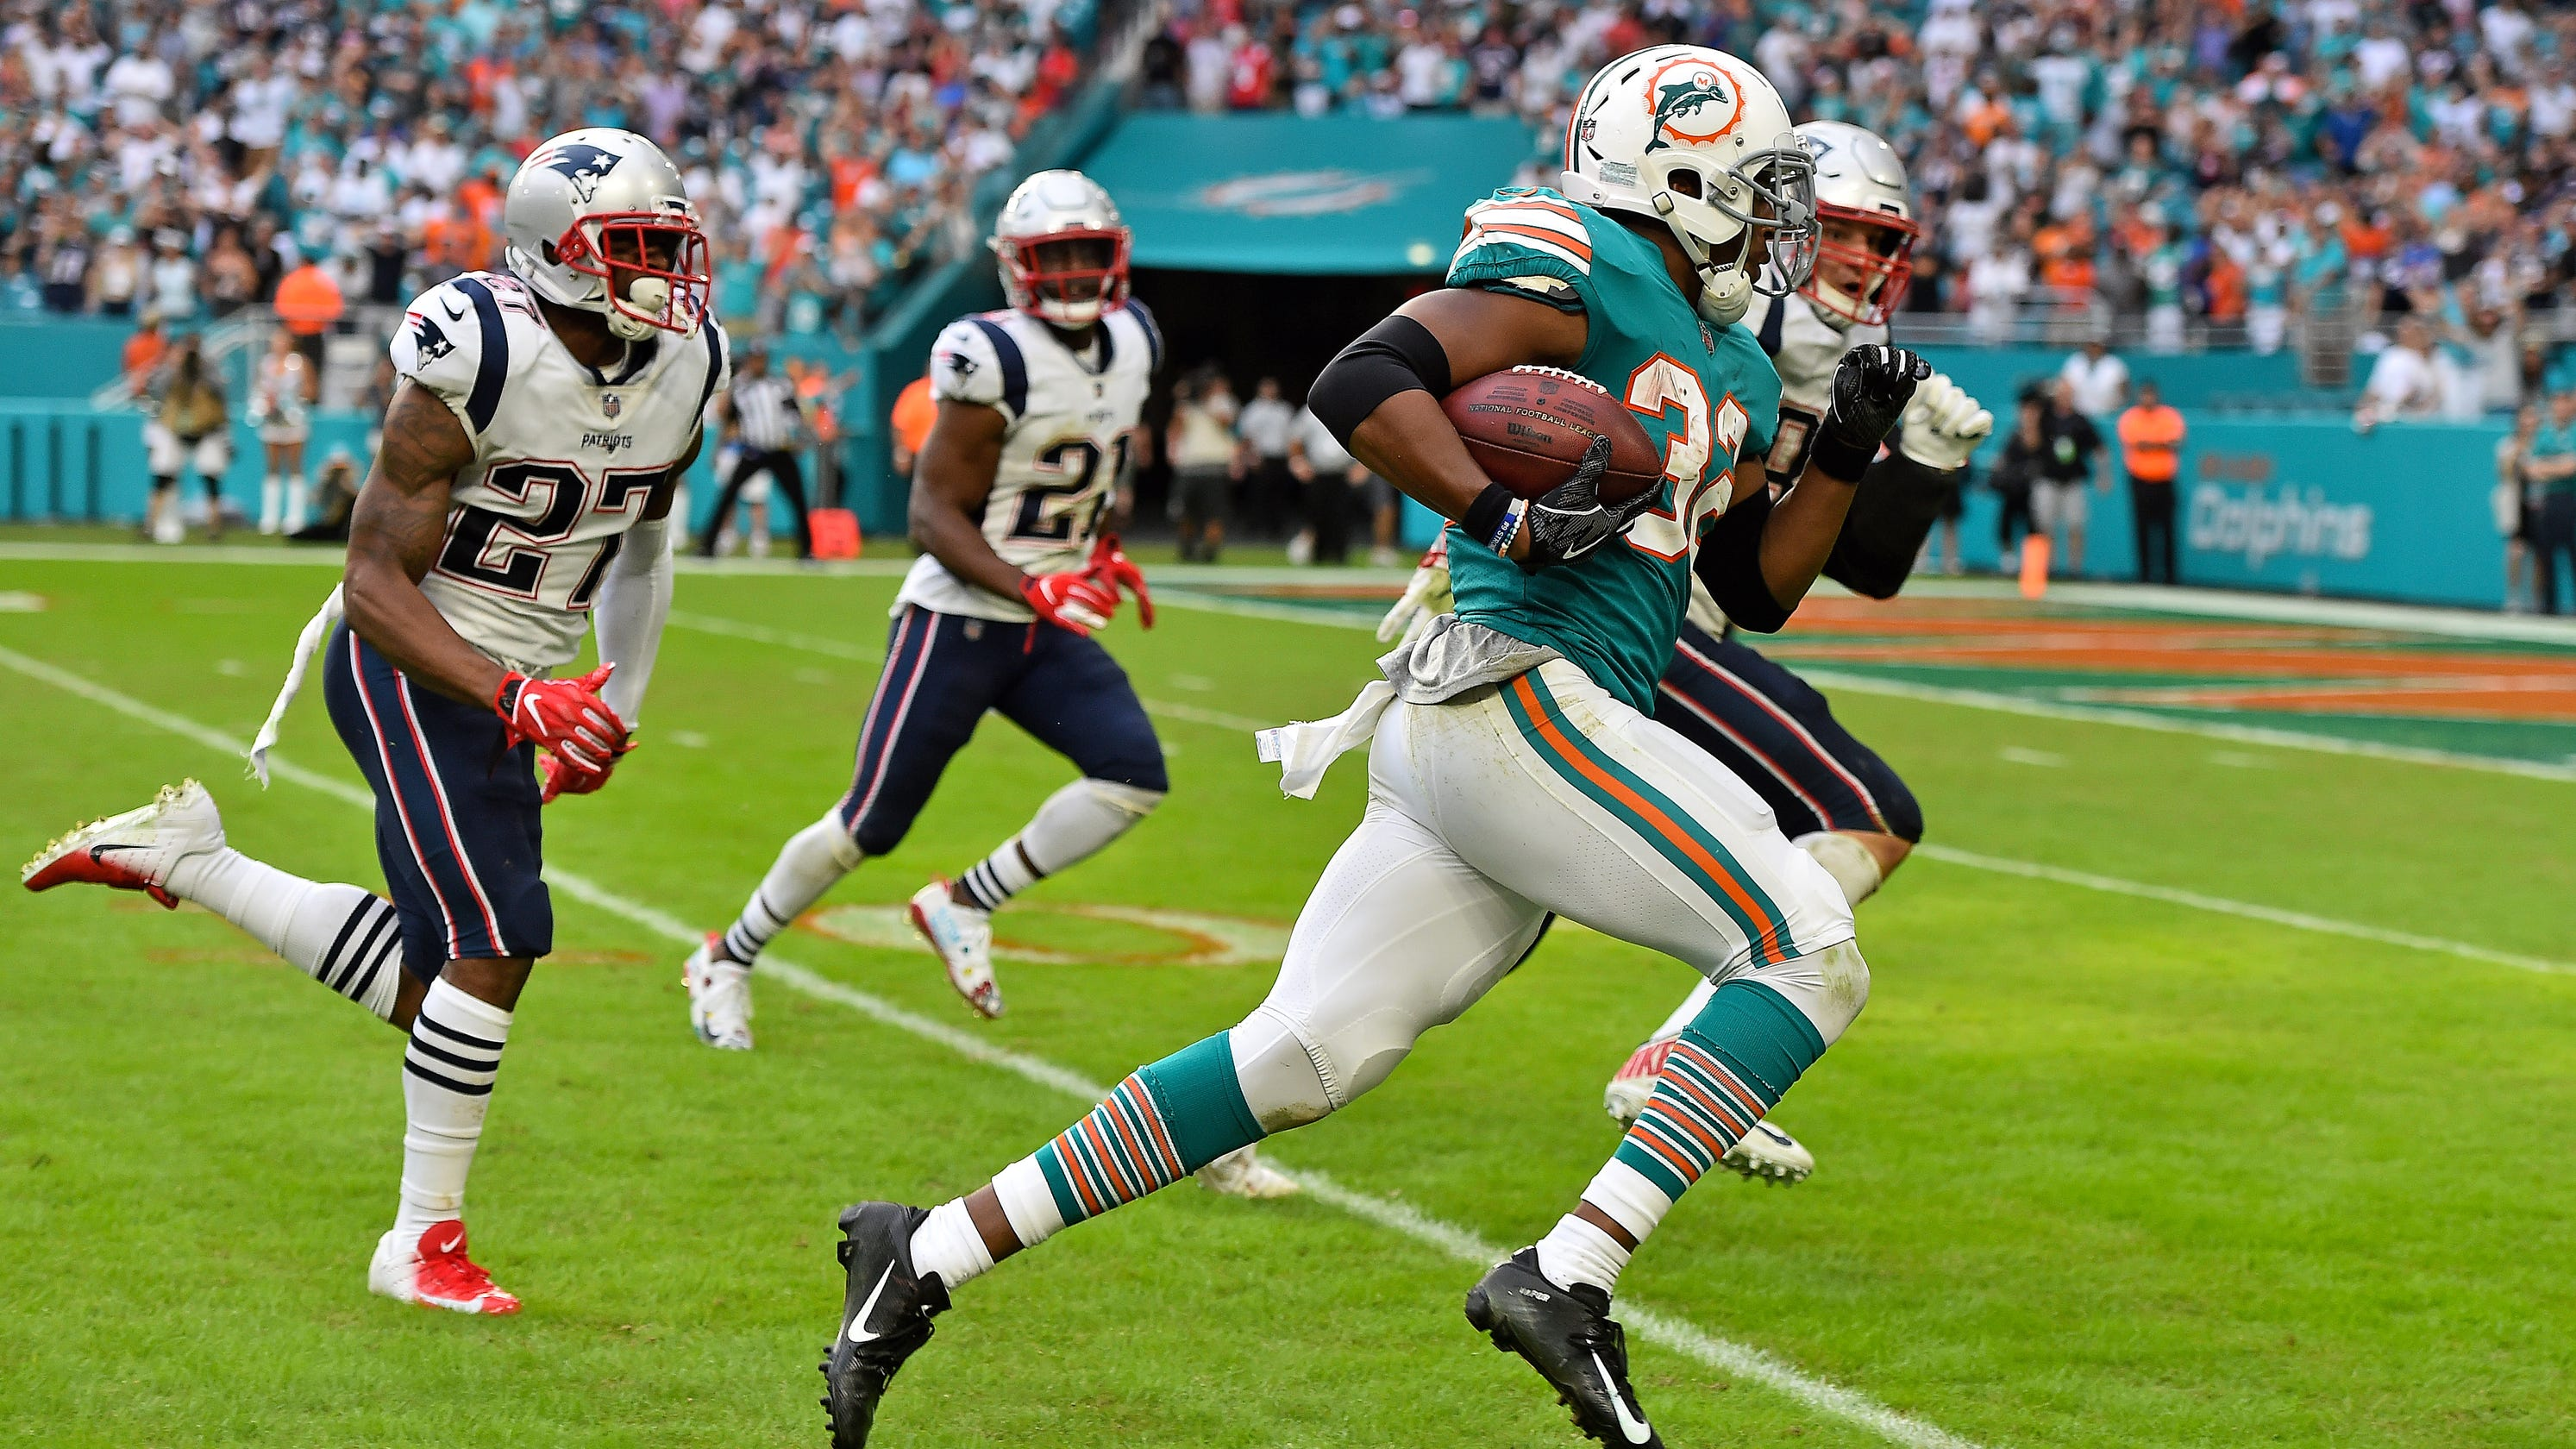 af6d4d01ede From wide receivers throwing TD passes to the Miami Miracle: 2018 NFL  season's best plays